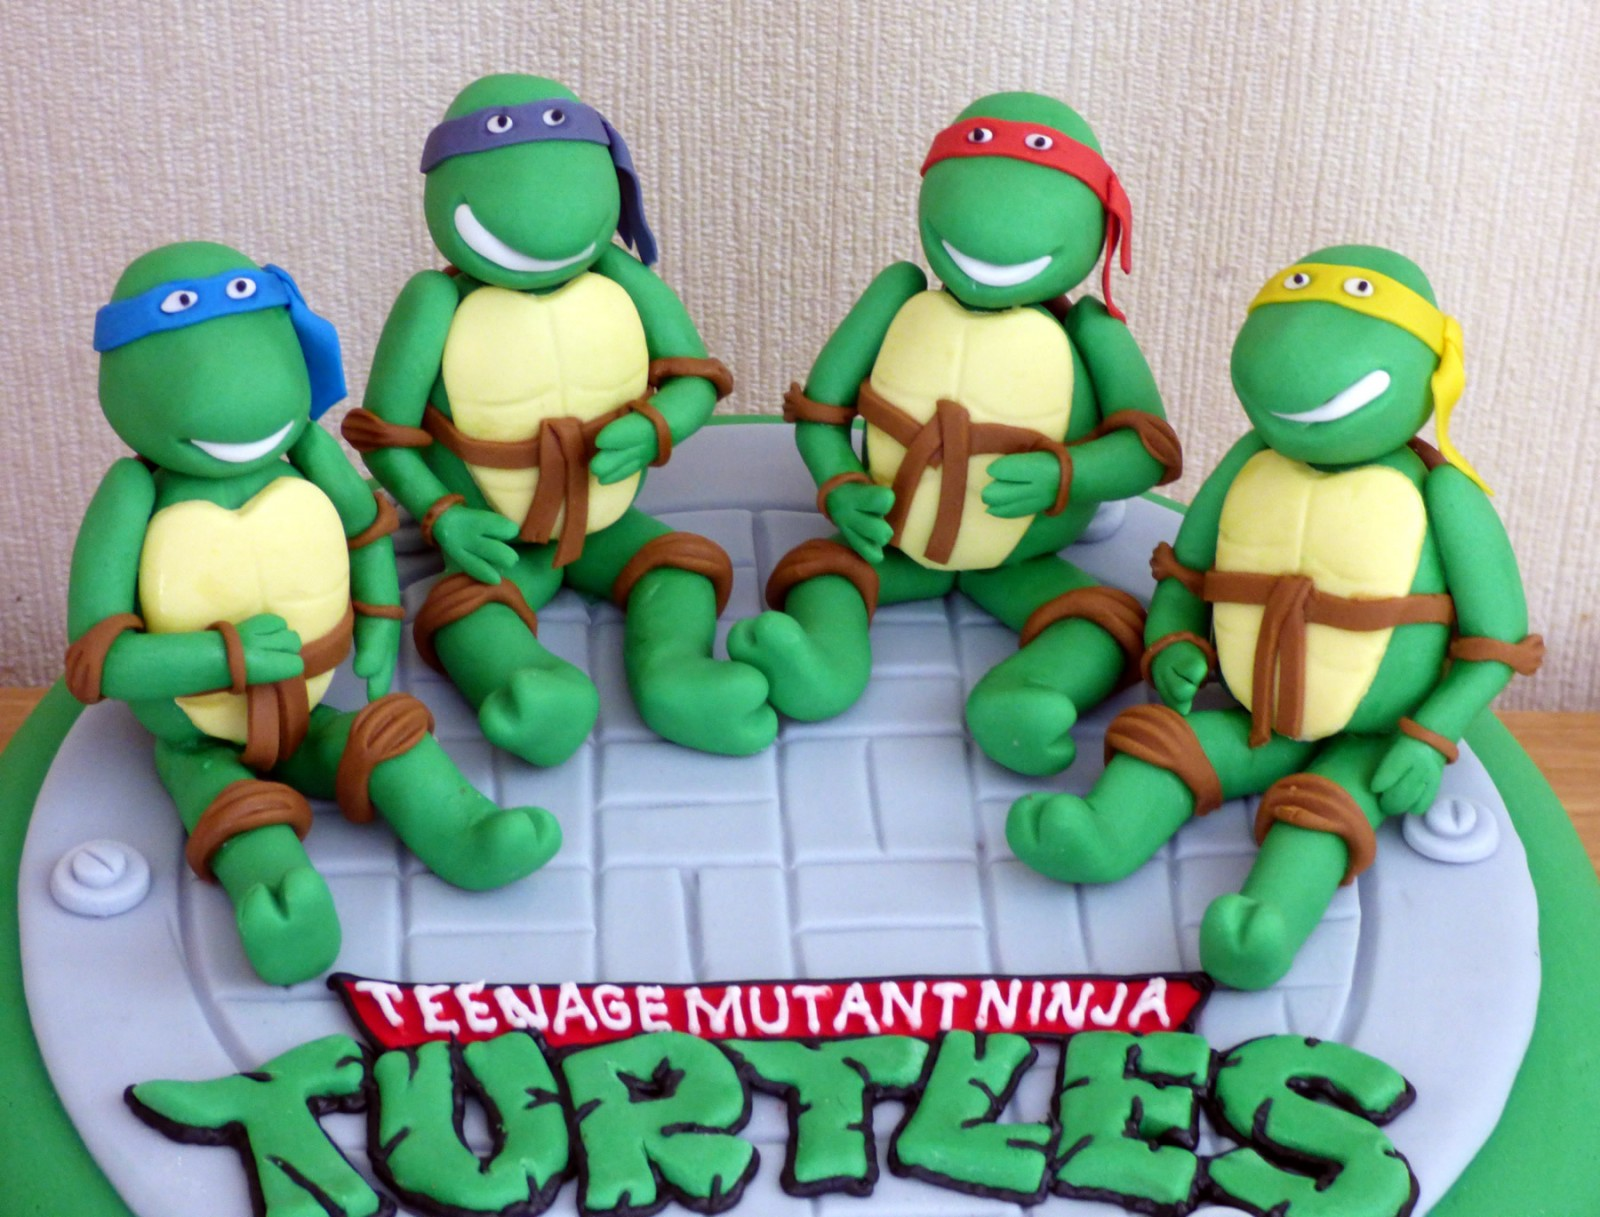 Teenage Mutant Ninja Turtles Novelty Birthday Cake « Susies Cakes